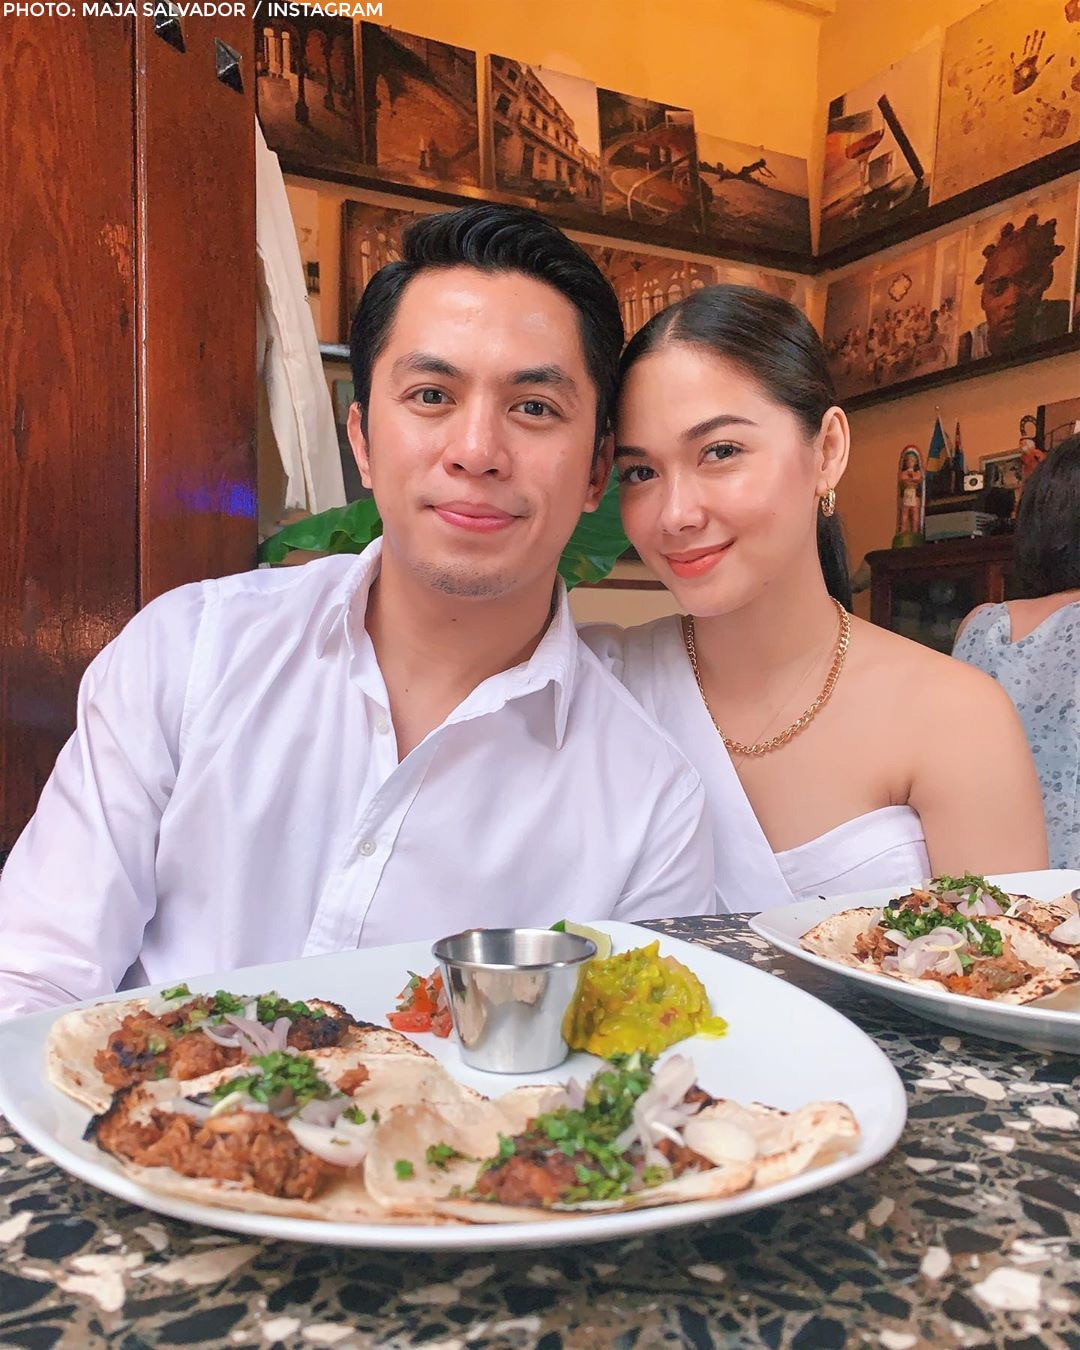 Maja and Rambo's Mexican escapade 2